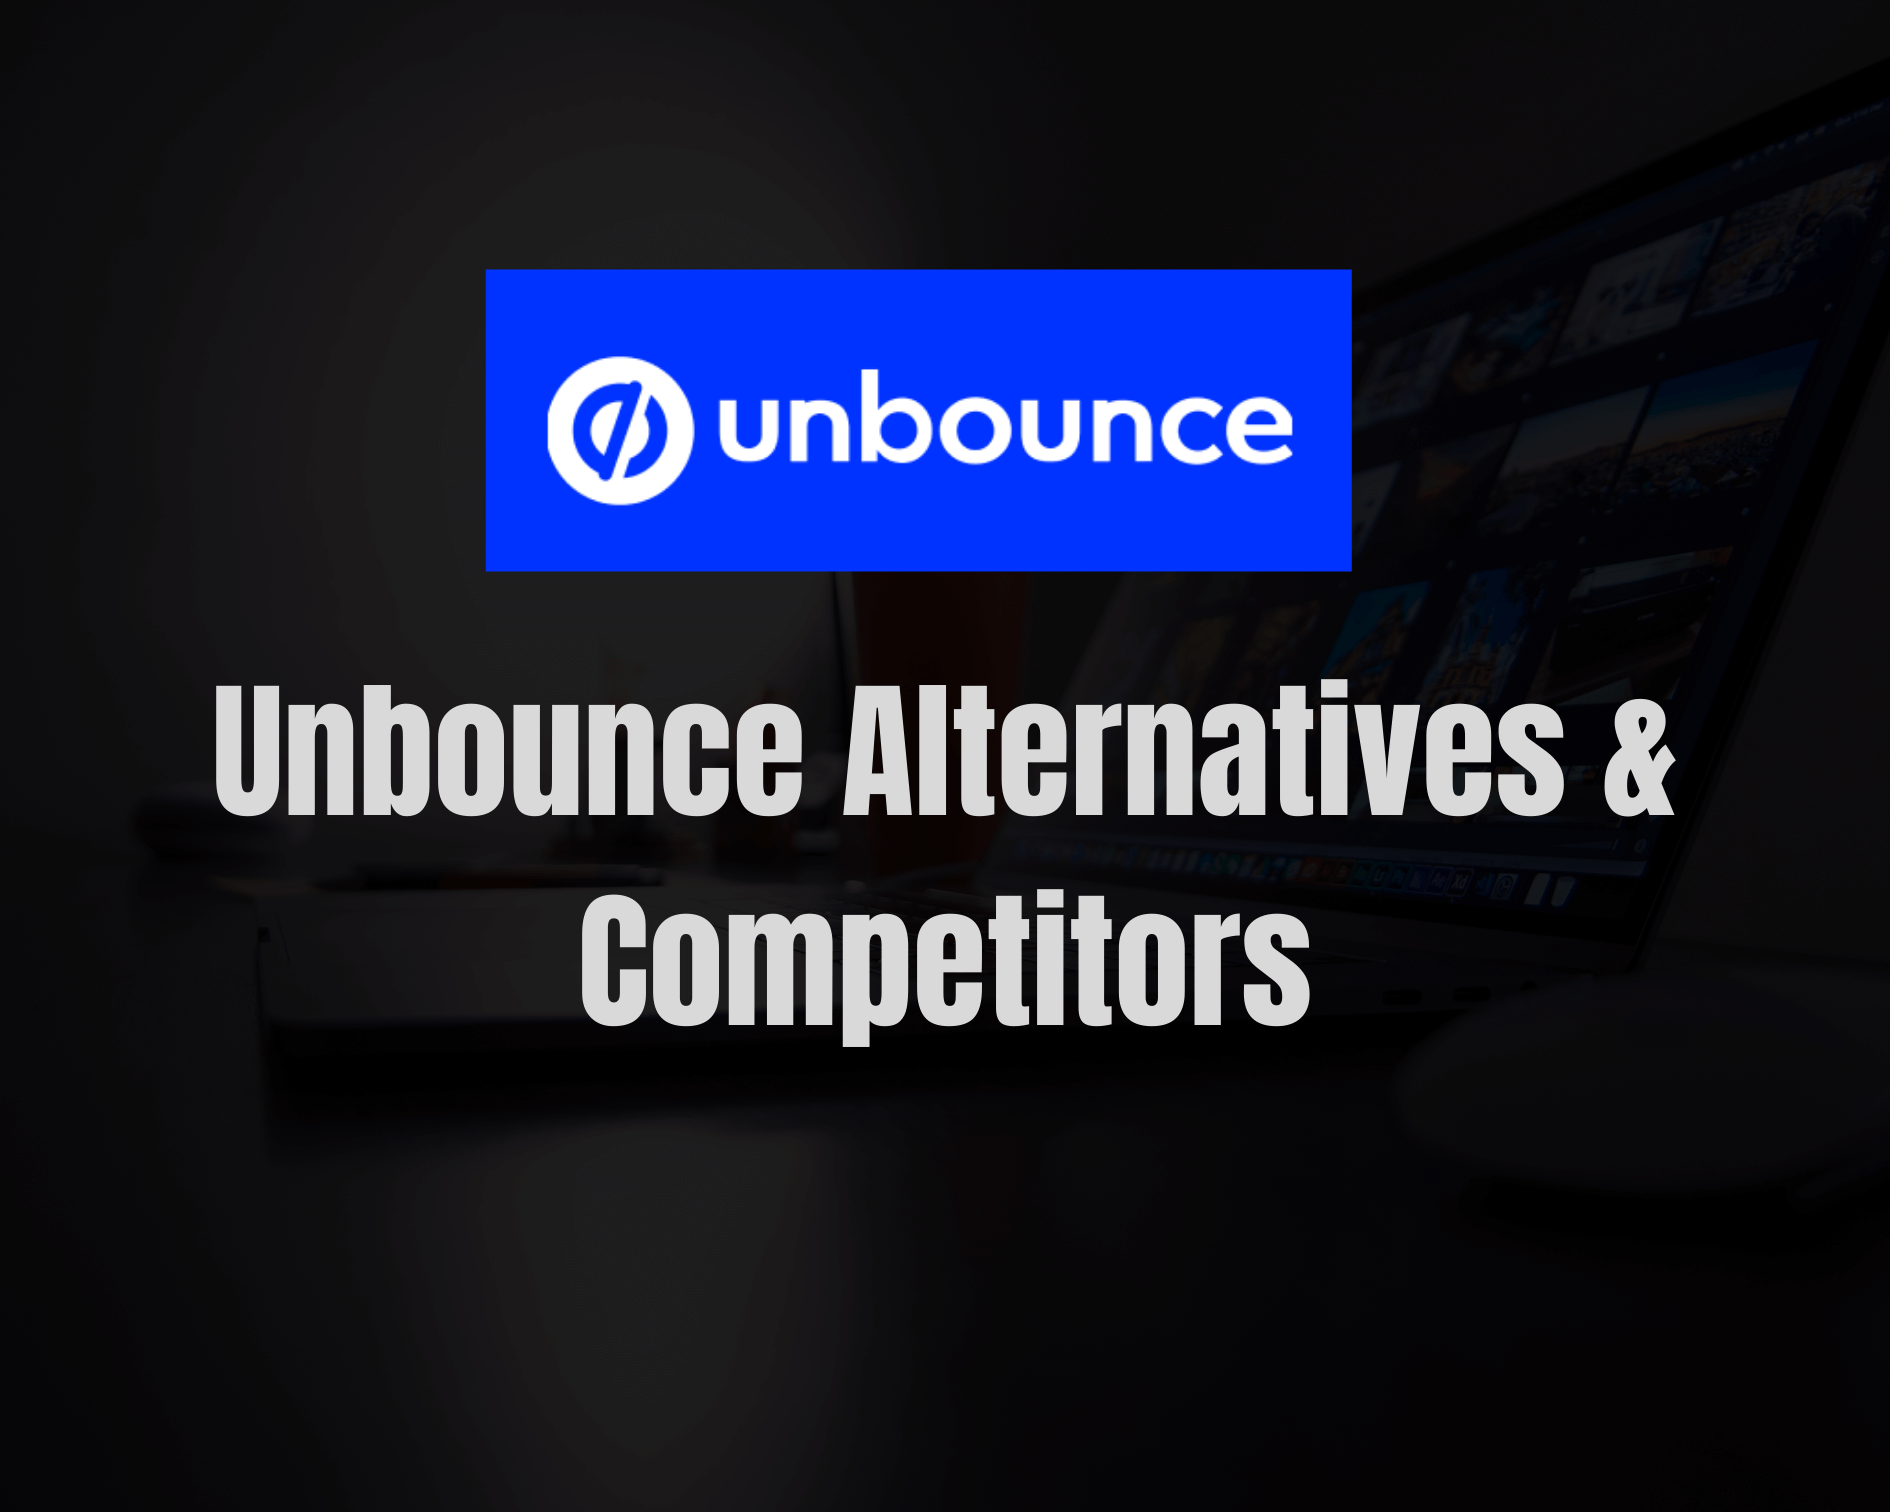 Best 8 Unbounce Alternatives & Competitors in 2020